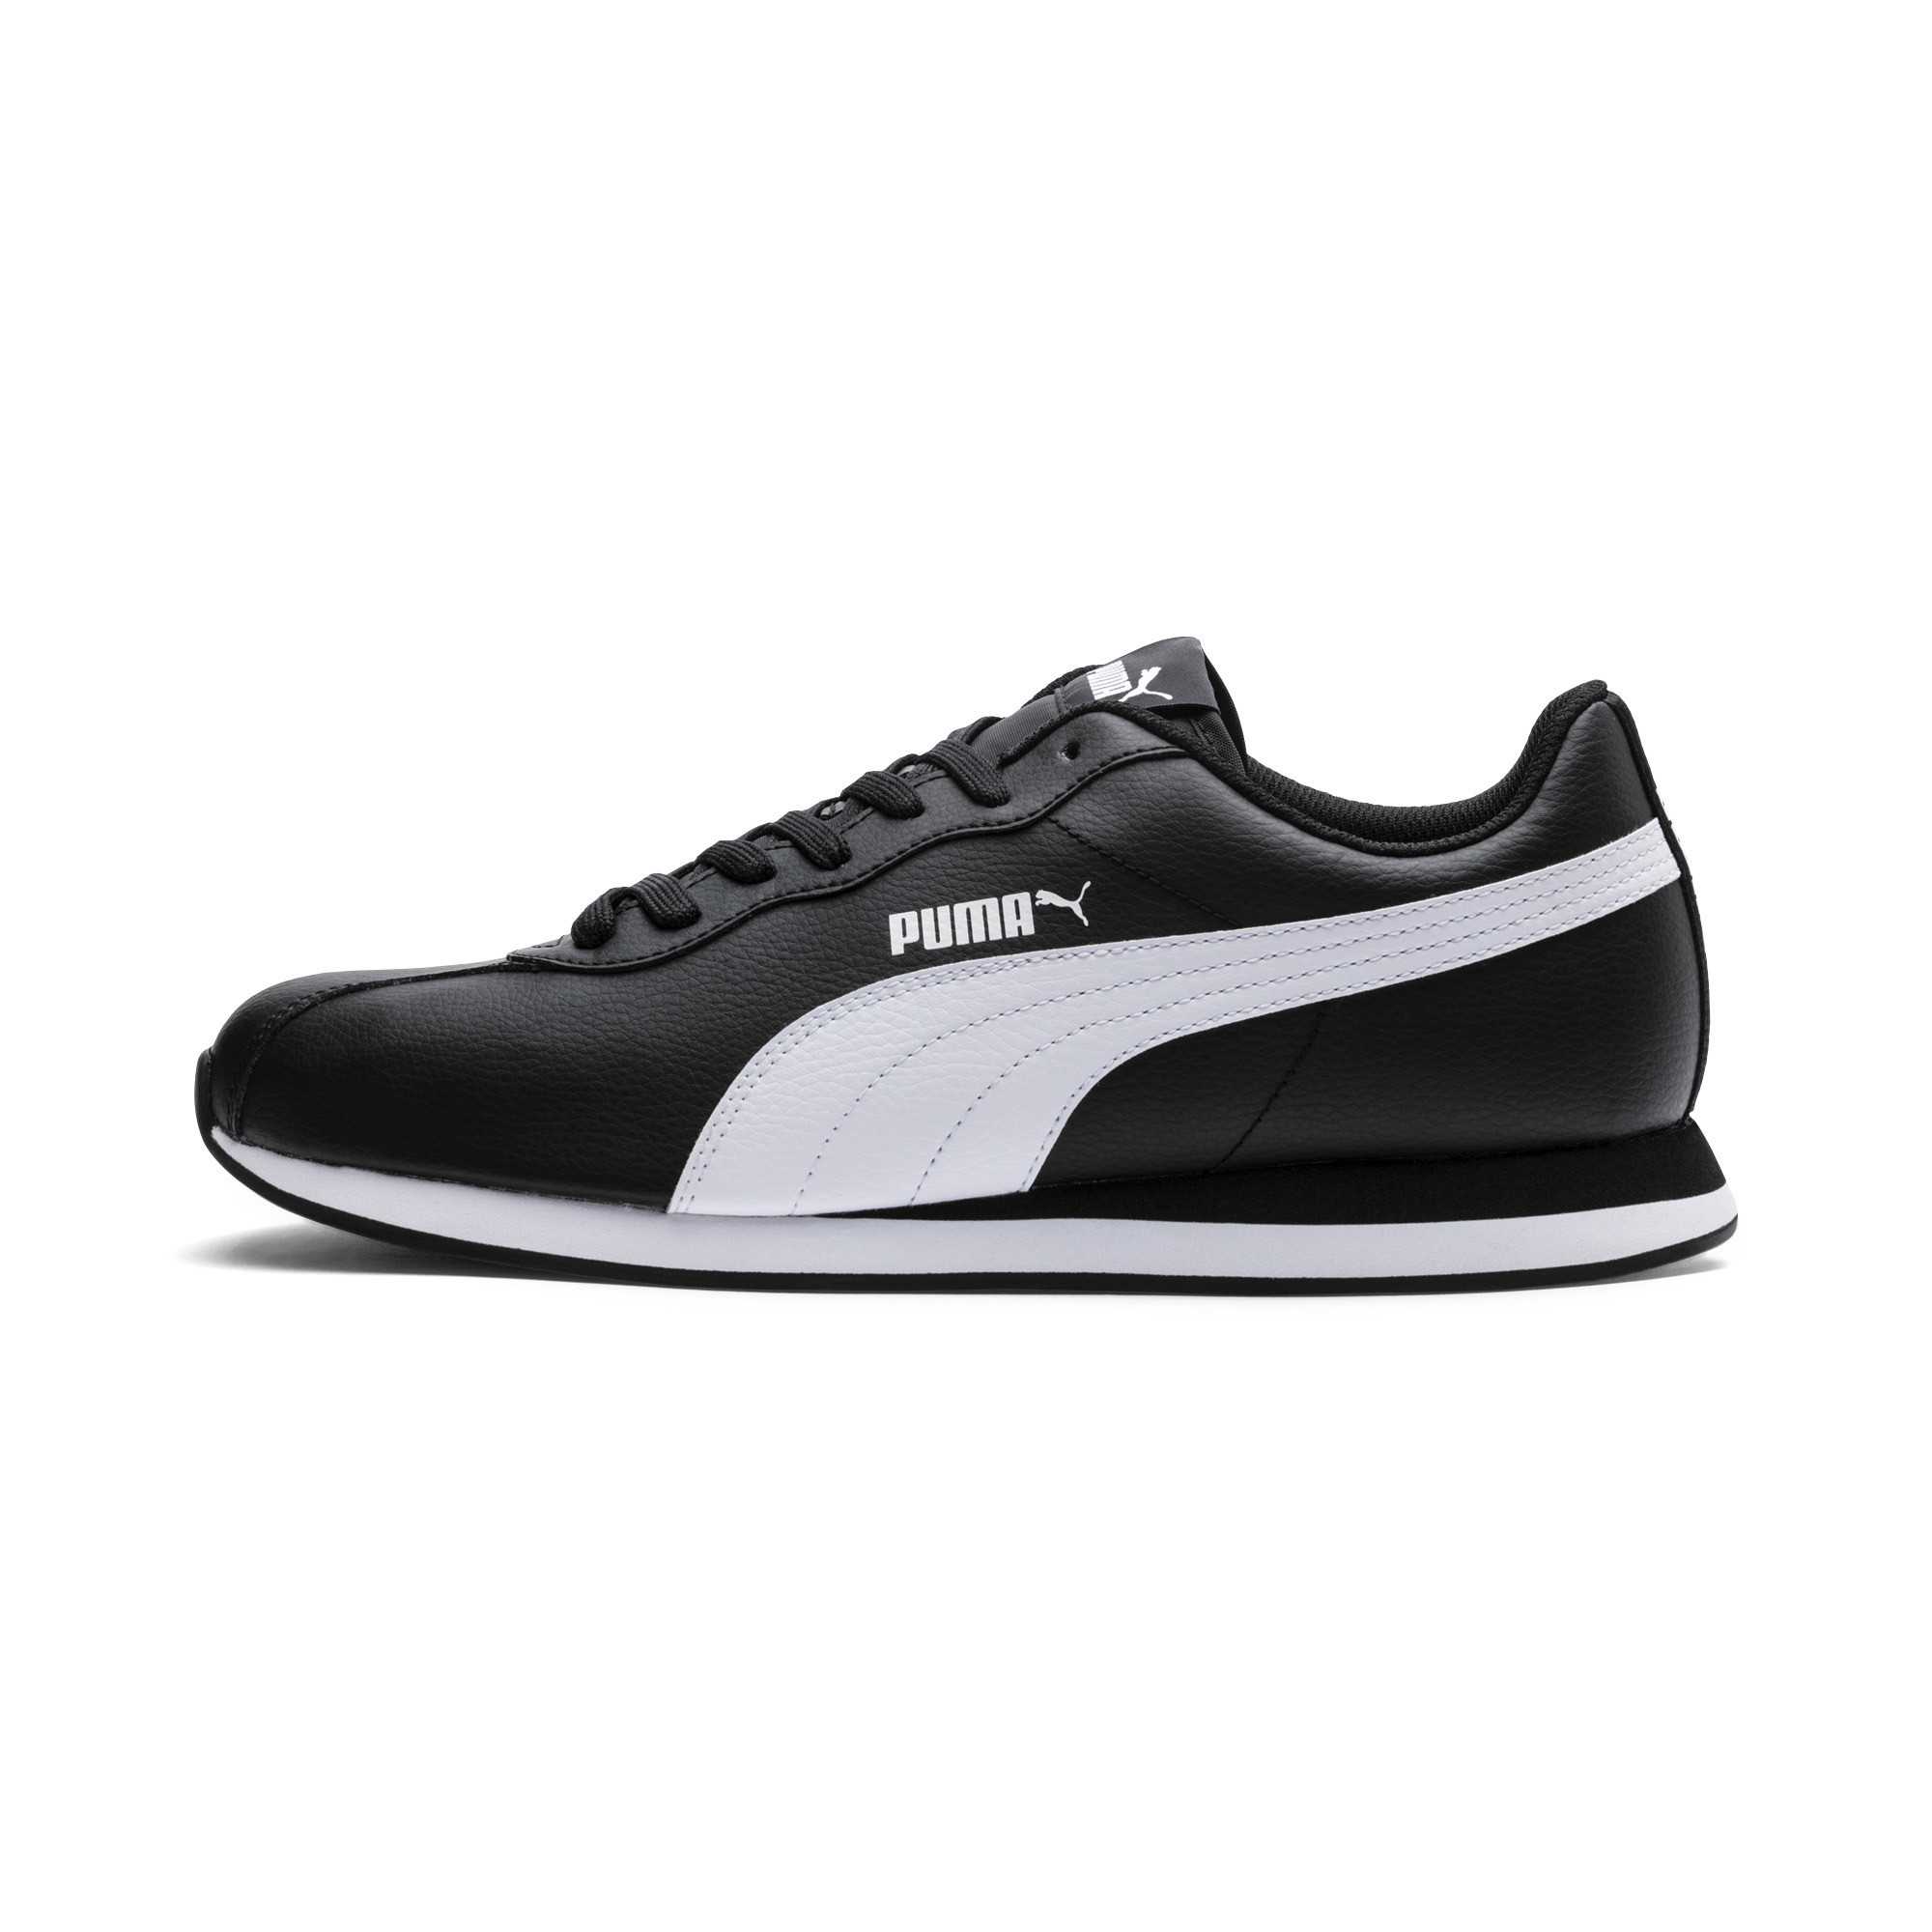 PUMA-Turin-II-Men-039-s-Sneakers-Men-Shoe-Basics thumbnail 34